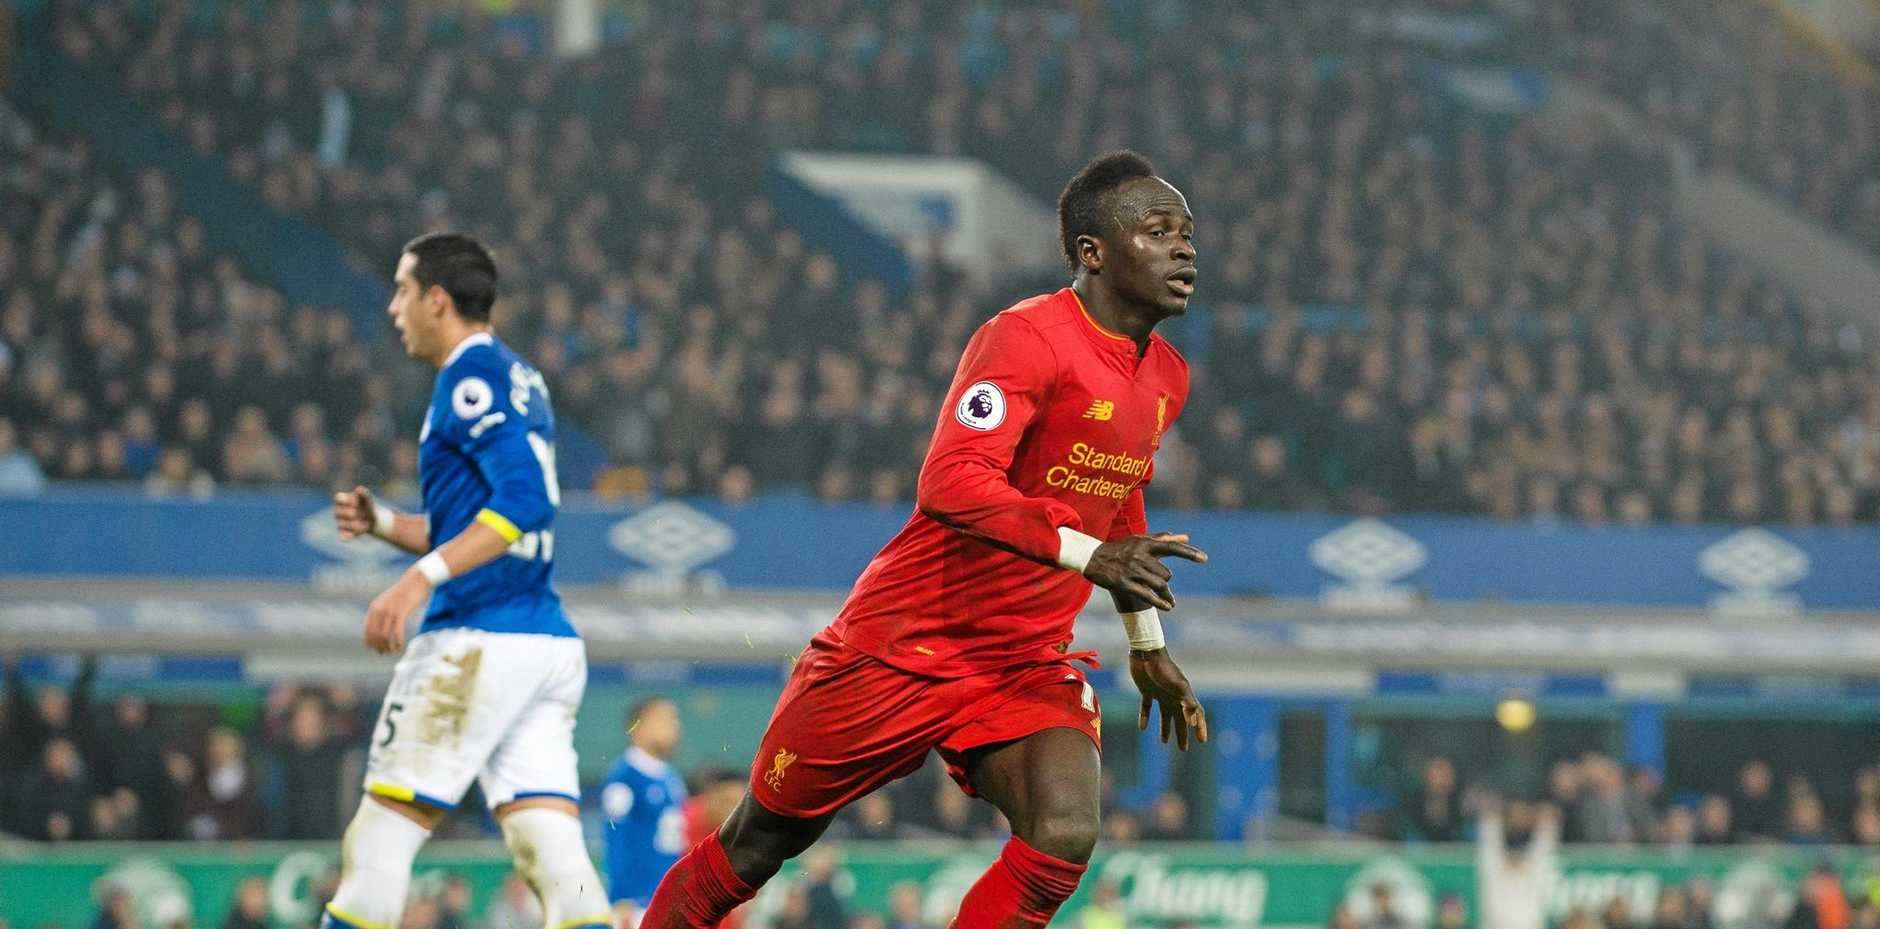 Liverpool's Sadio Mane celebrates scoring the winner against Everton at Goodison Park.